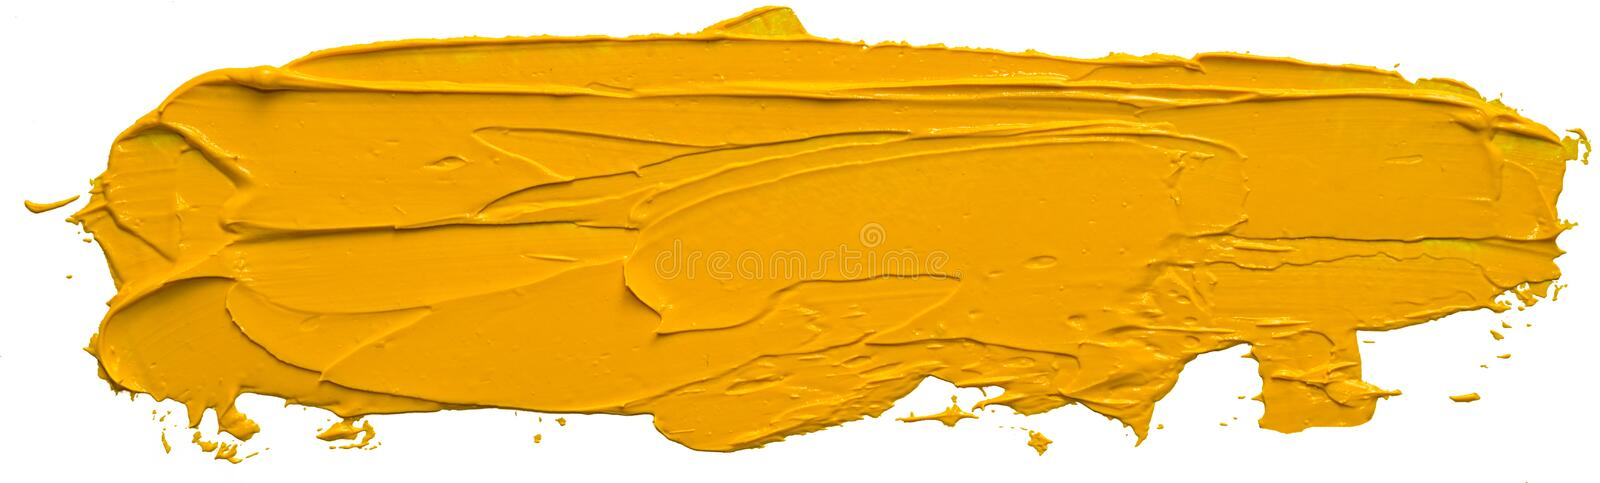 Textured yellow oil paint brush stroke. Convex with shadows, isolated on transparent background stock photos